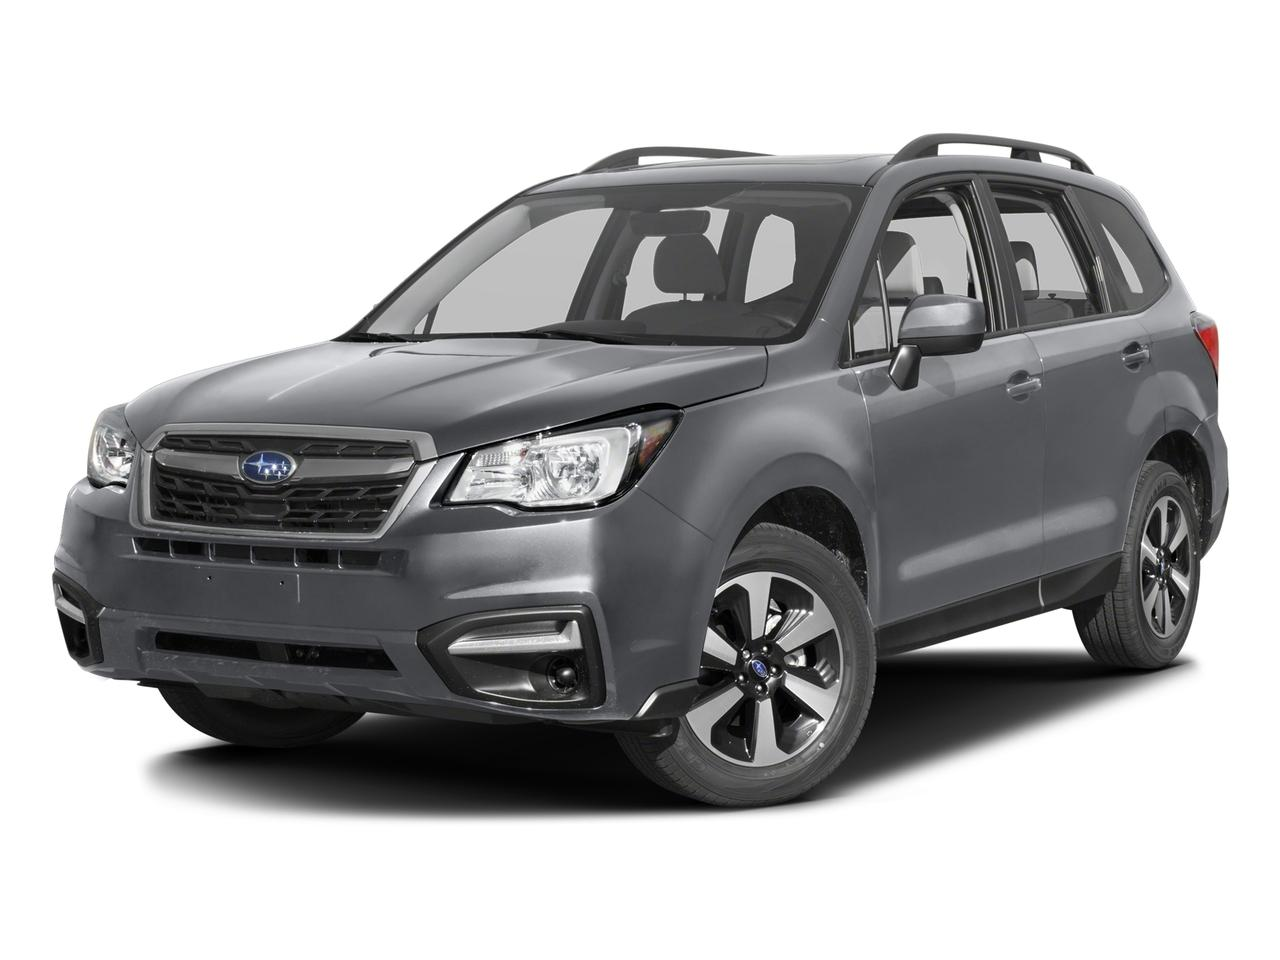 2017 Subaru Forester Vehicle Photo in Trevose, PA 19053-4984